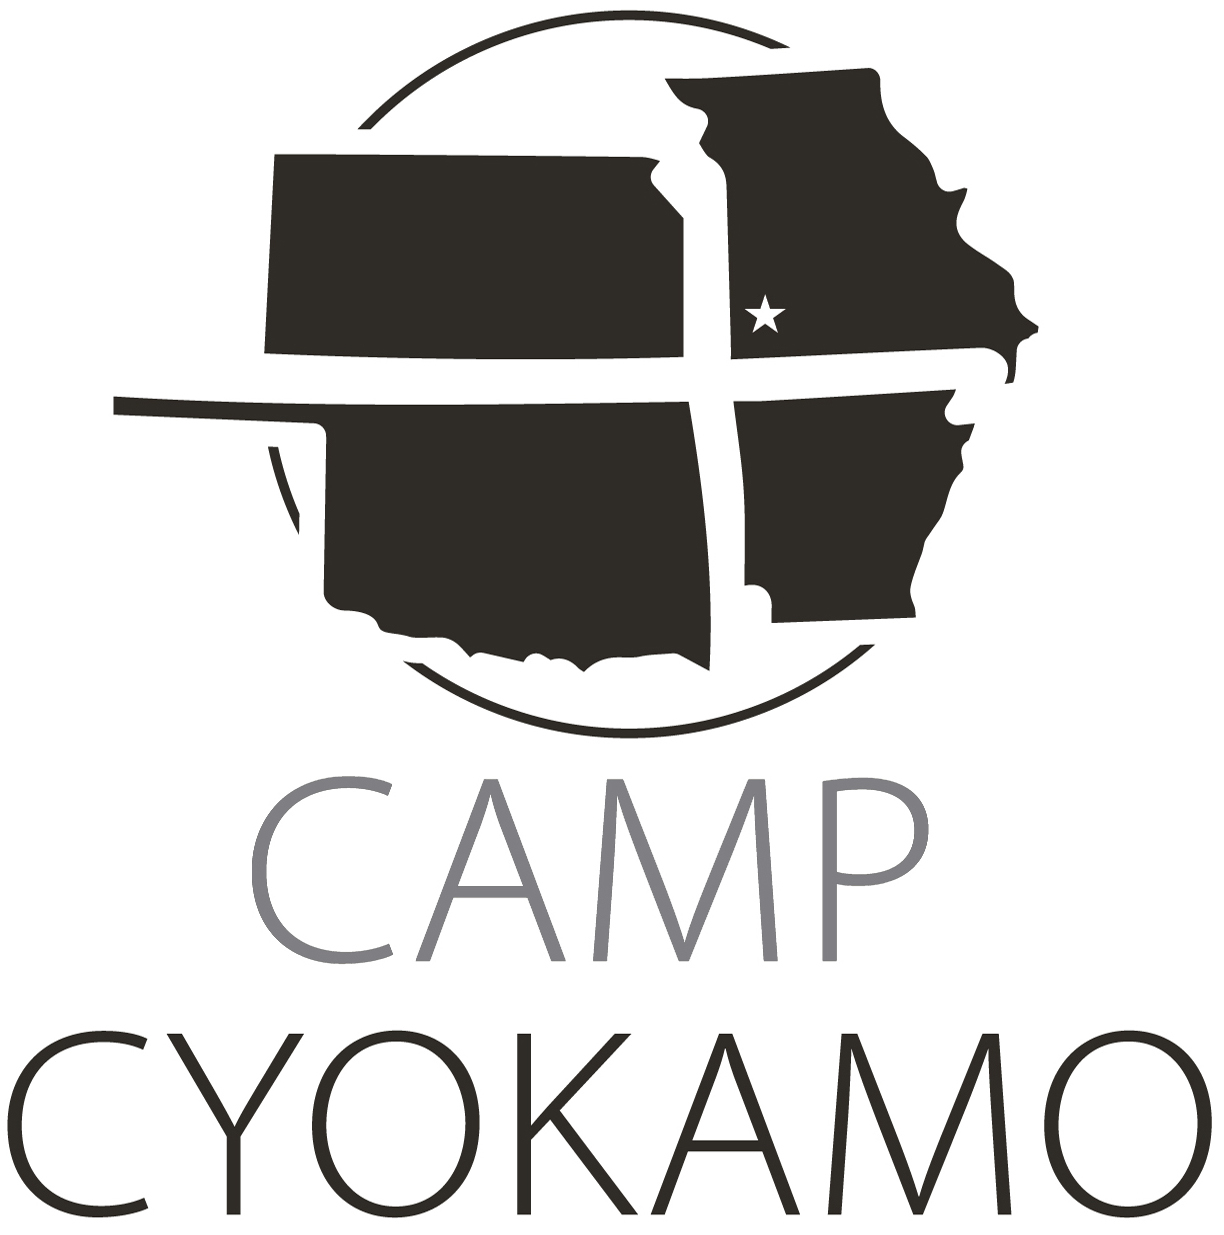 Camp Cyokamo Stacked Centered (gray) w star.jpg